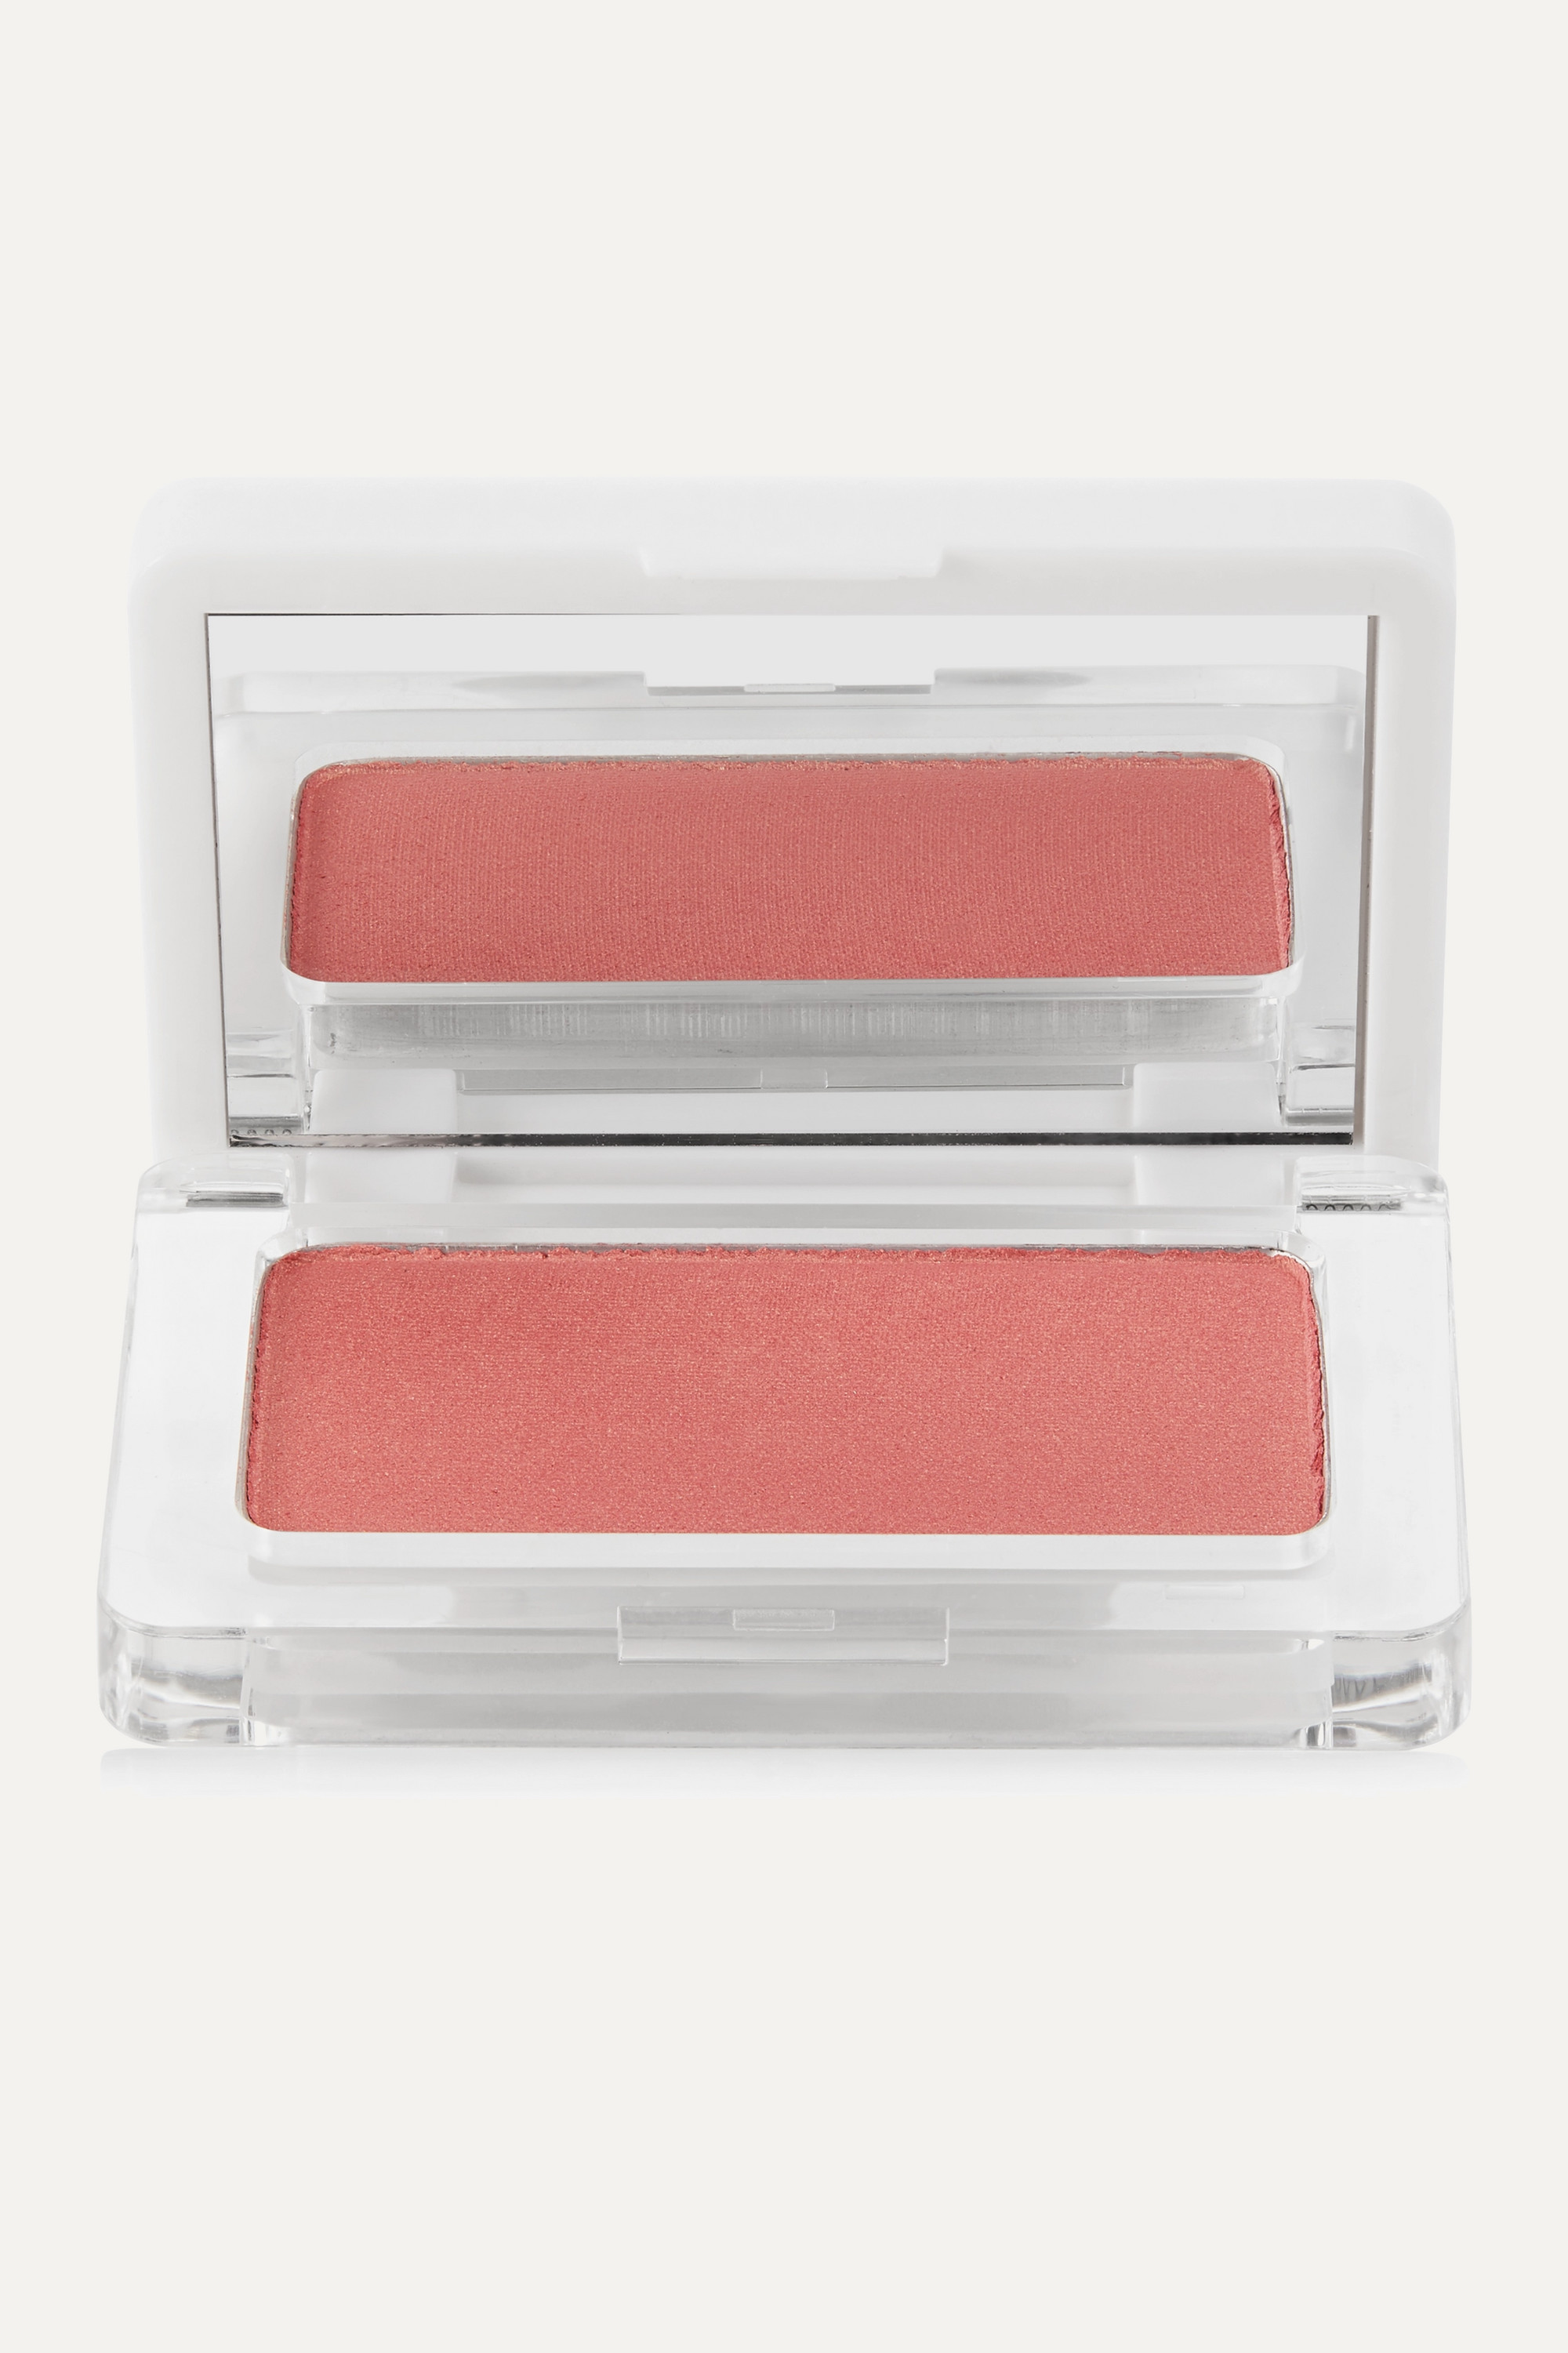 RMS Beauty Pressed Blush – Lost Angel – Rouge